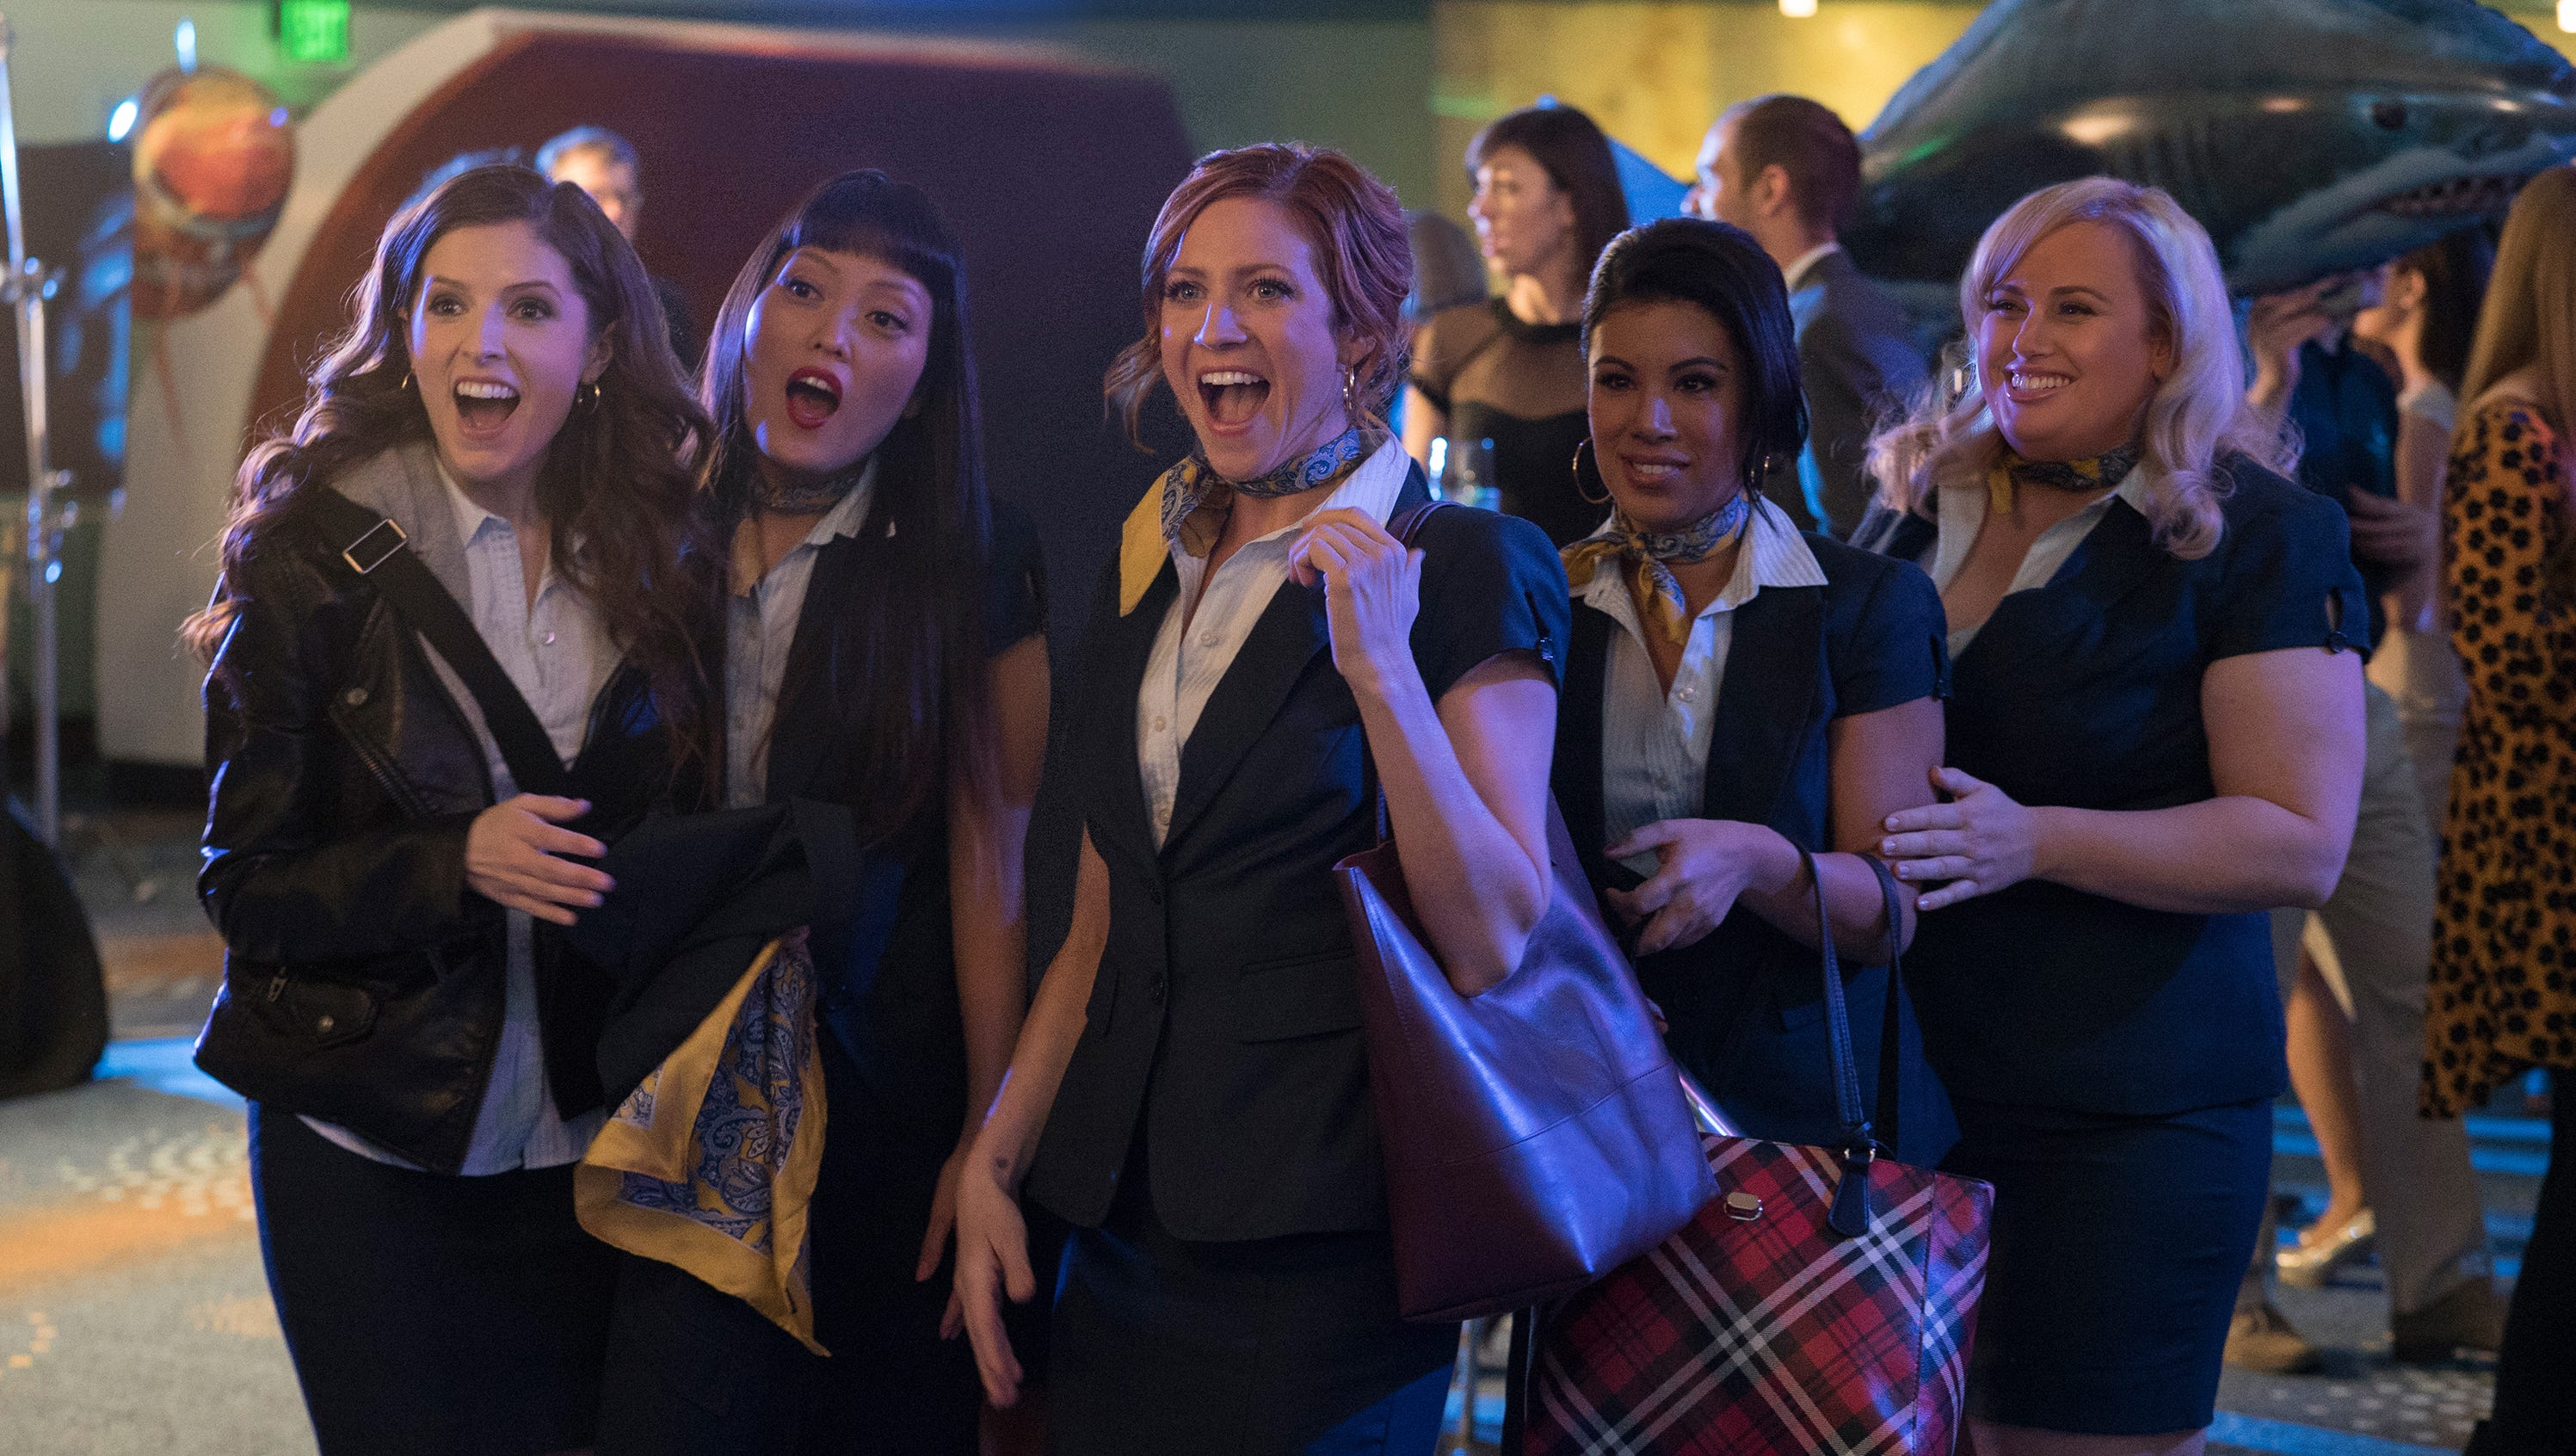 Pitch Perfect 4 Fans Speculate New Movie Over Photo Of Cast Members